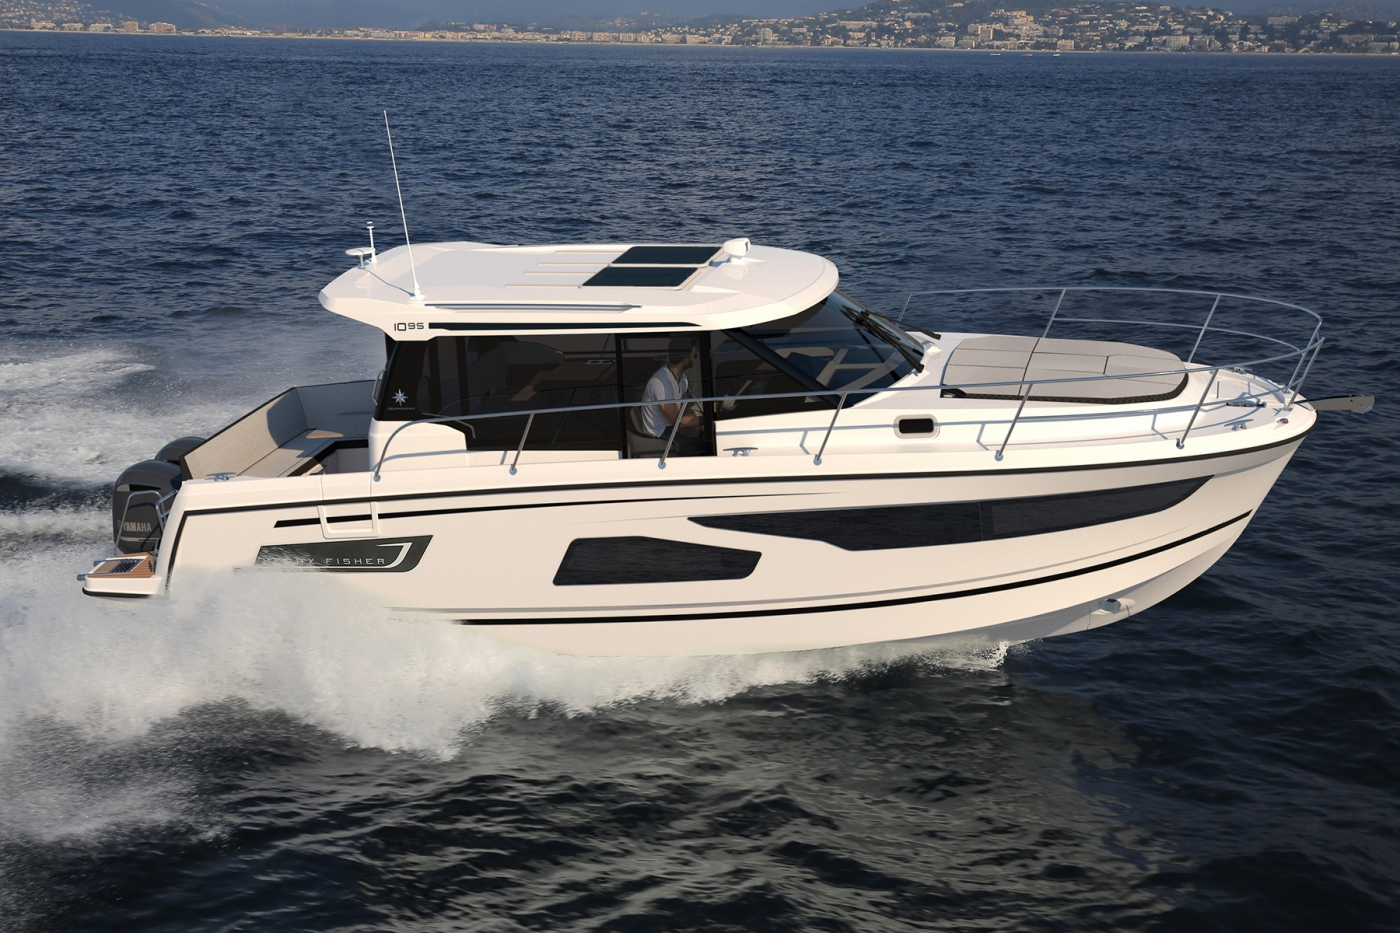 Jeanneau Merry Fisher 1095 Motor Boat - Sea Ventures